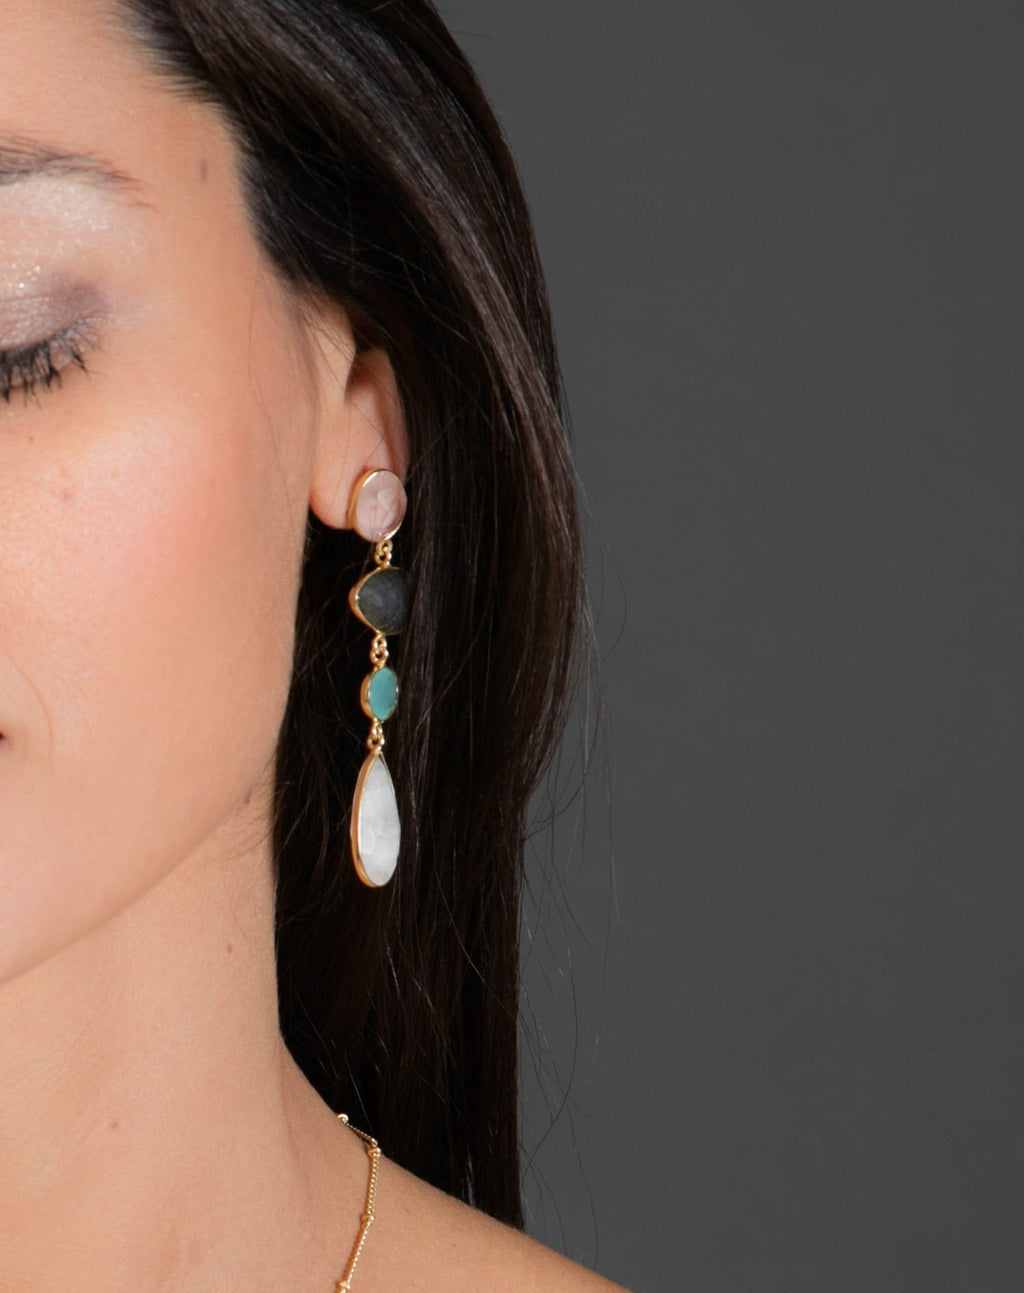 Bela Liz Earrings * Rose Quartz, Labradorite, Aqua Chalcedony &  Moonstone * Gold Plated 18k * BJE091